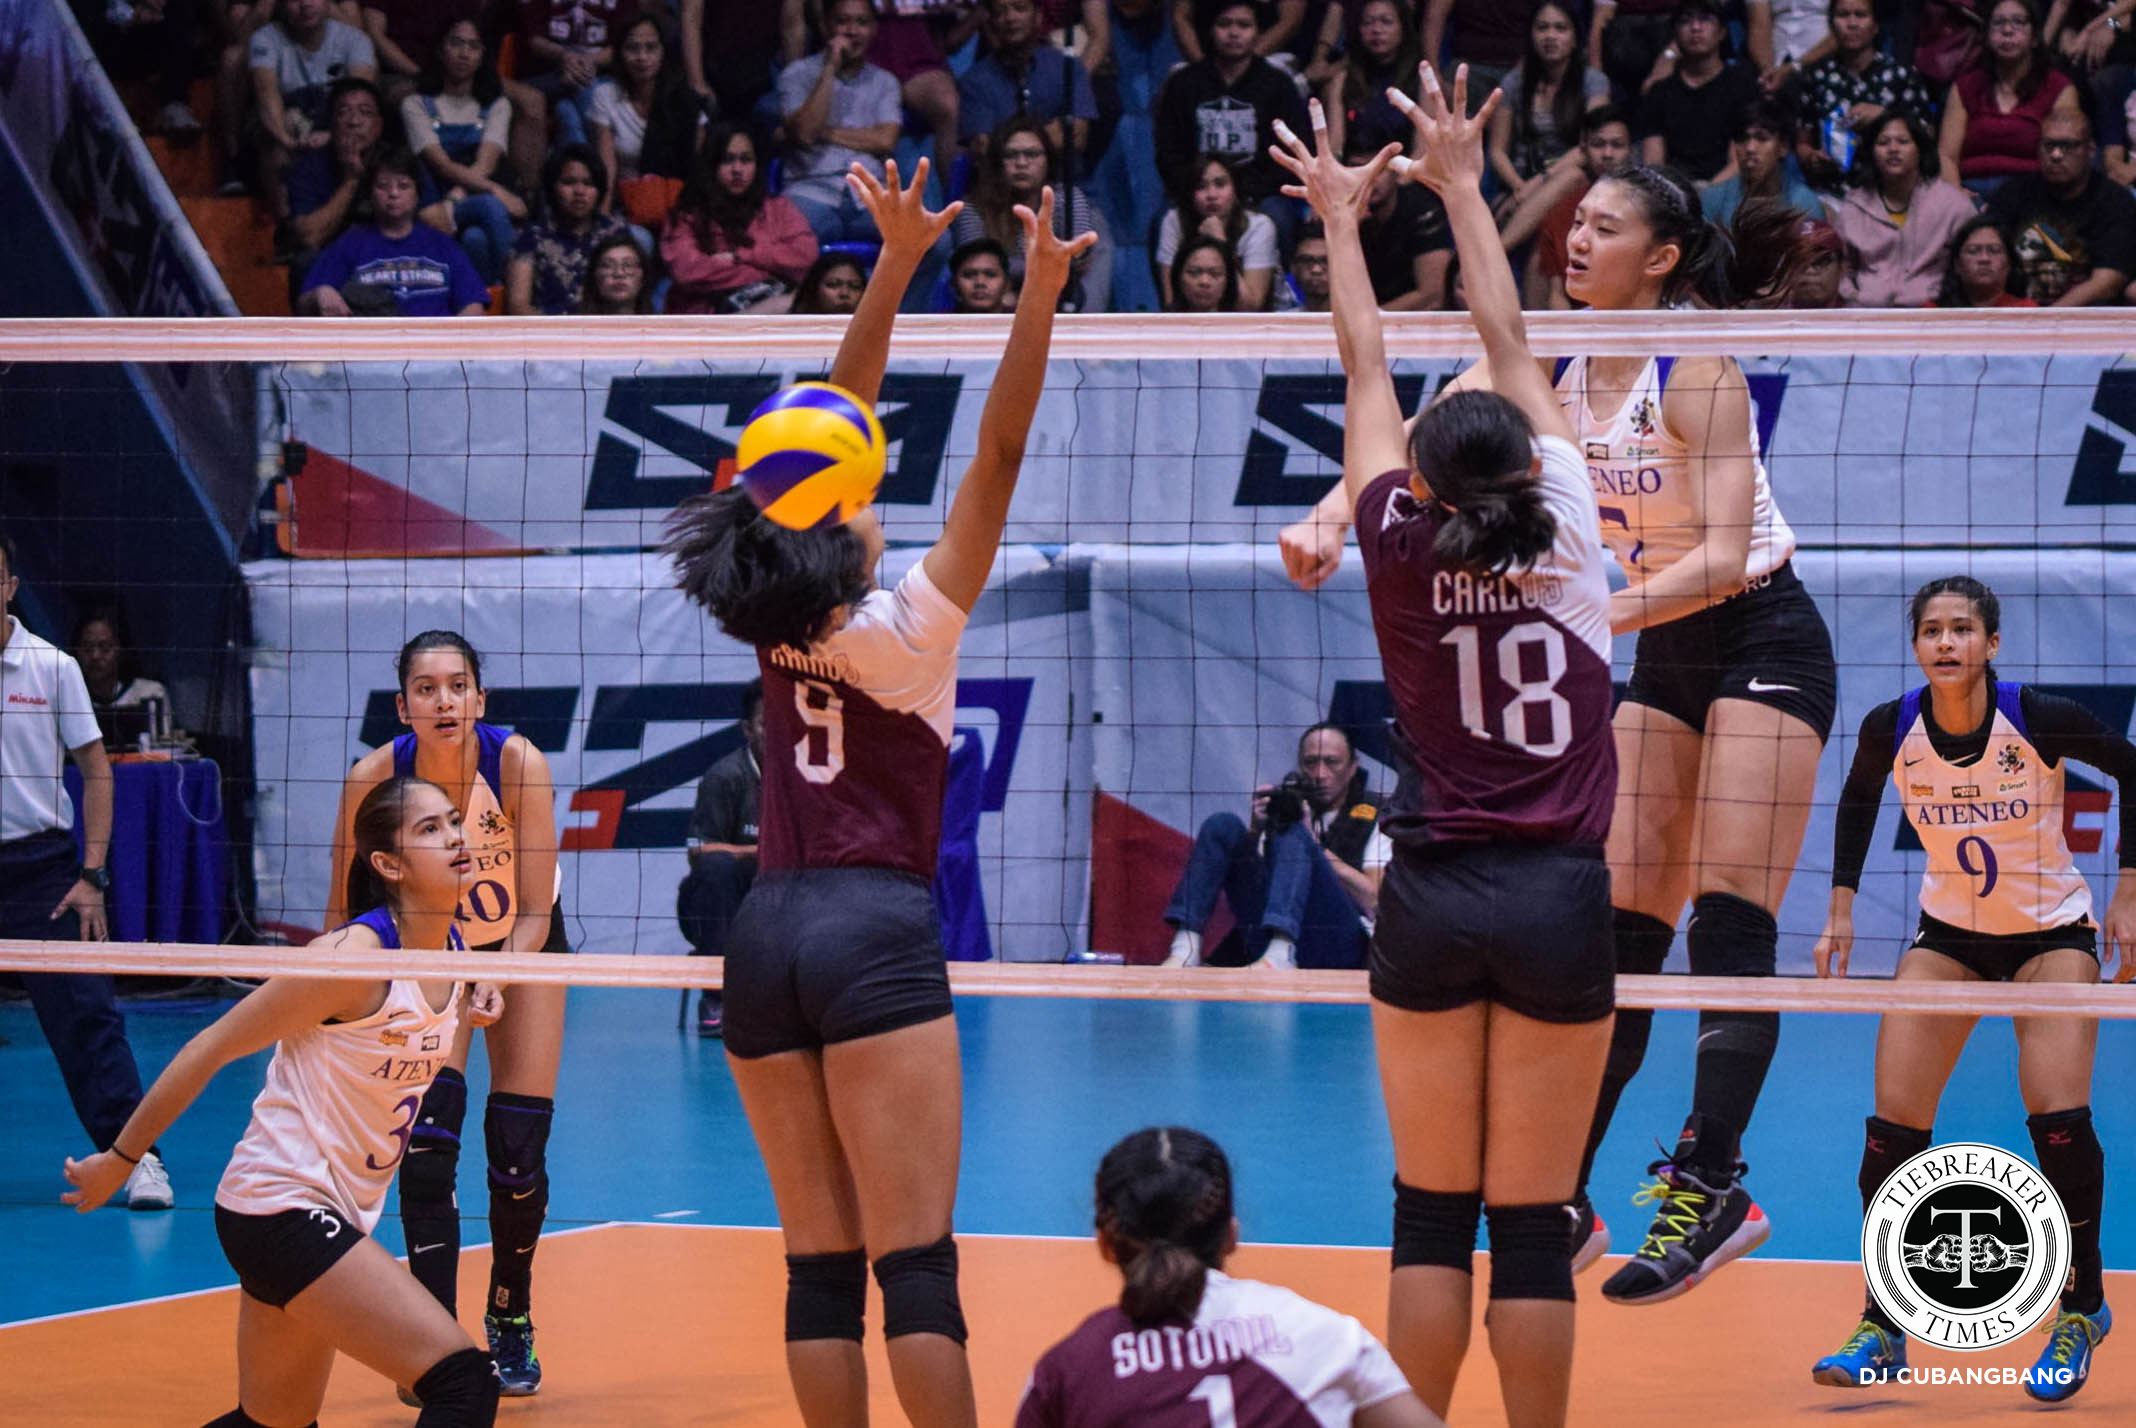 Tiebreaker Times Ateneo Lady Eagles claim solo first, overwhelm UP ADMU News UAAP UP Volleyball  UP Women's Volleyball UAAP Season 81 Women's Volleyball UAAP Season 81 Tots Carlos Oliver Almadro Maddie Madayag Kim Gequillana Kat Tolentino Godfrey Okumu Deanna Wong Ateneo Women's Volleyball Aie Gannaban